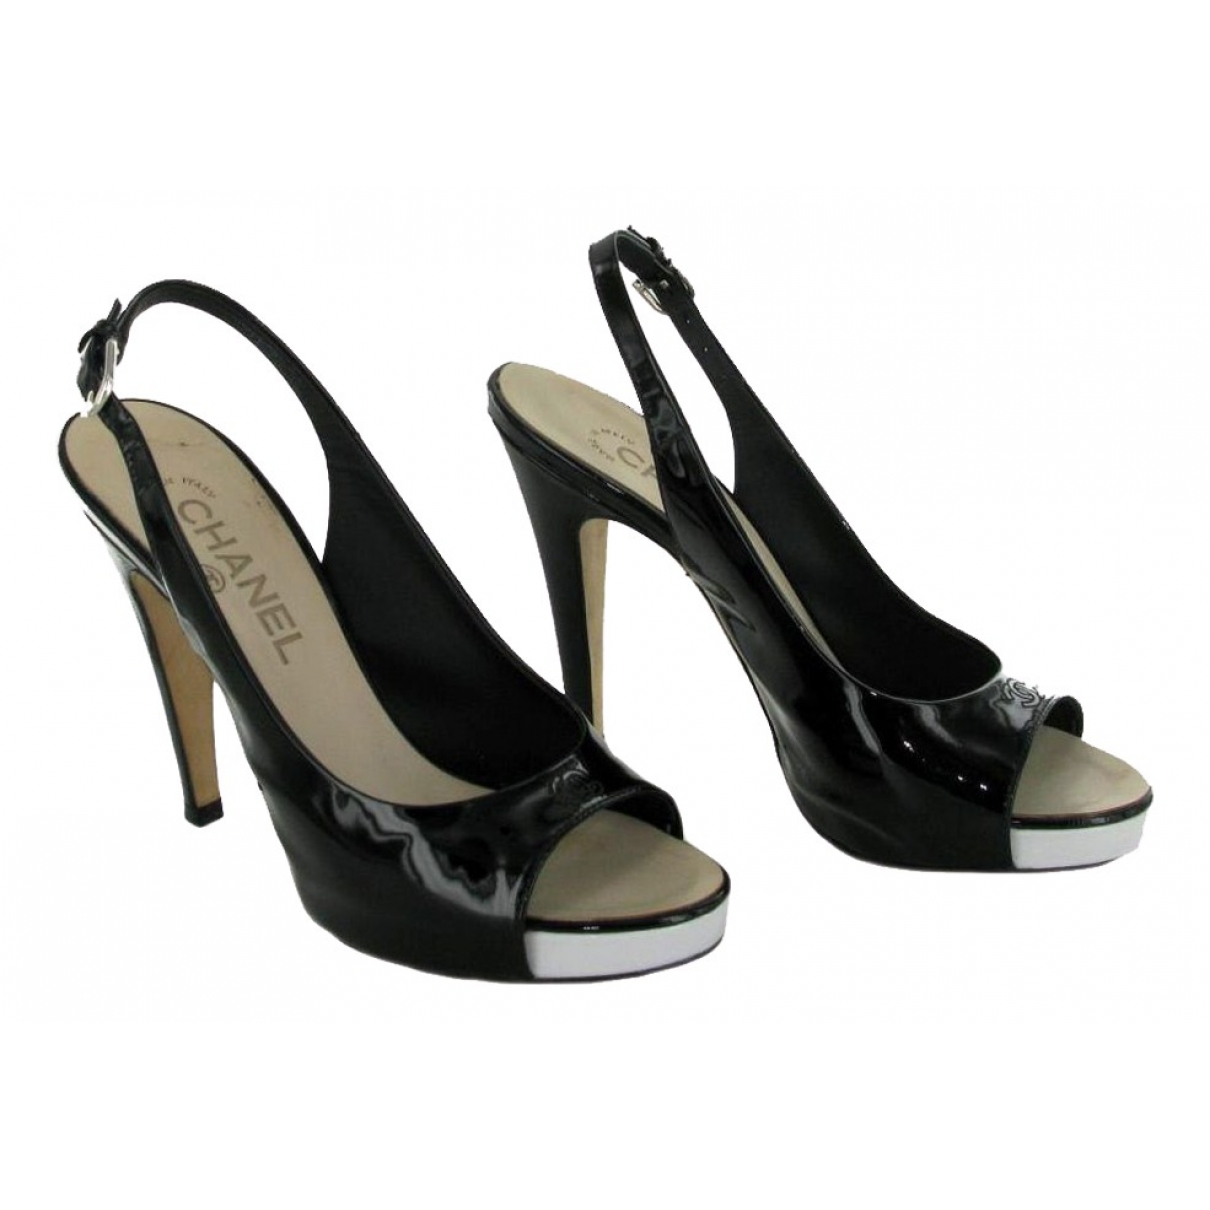 Chanel \N Black Patent leather Heels for Women 37 EU